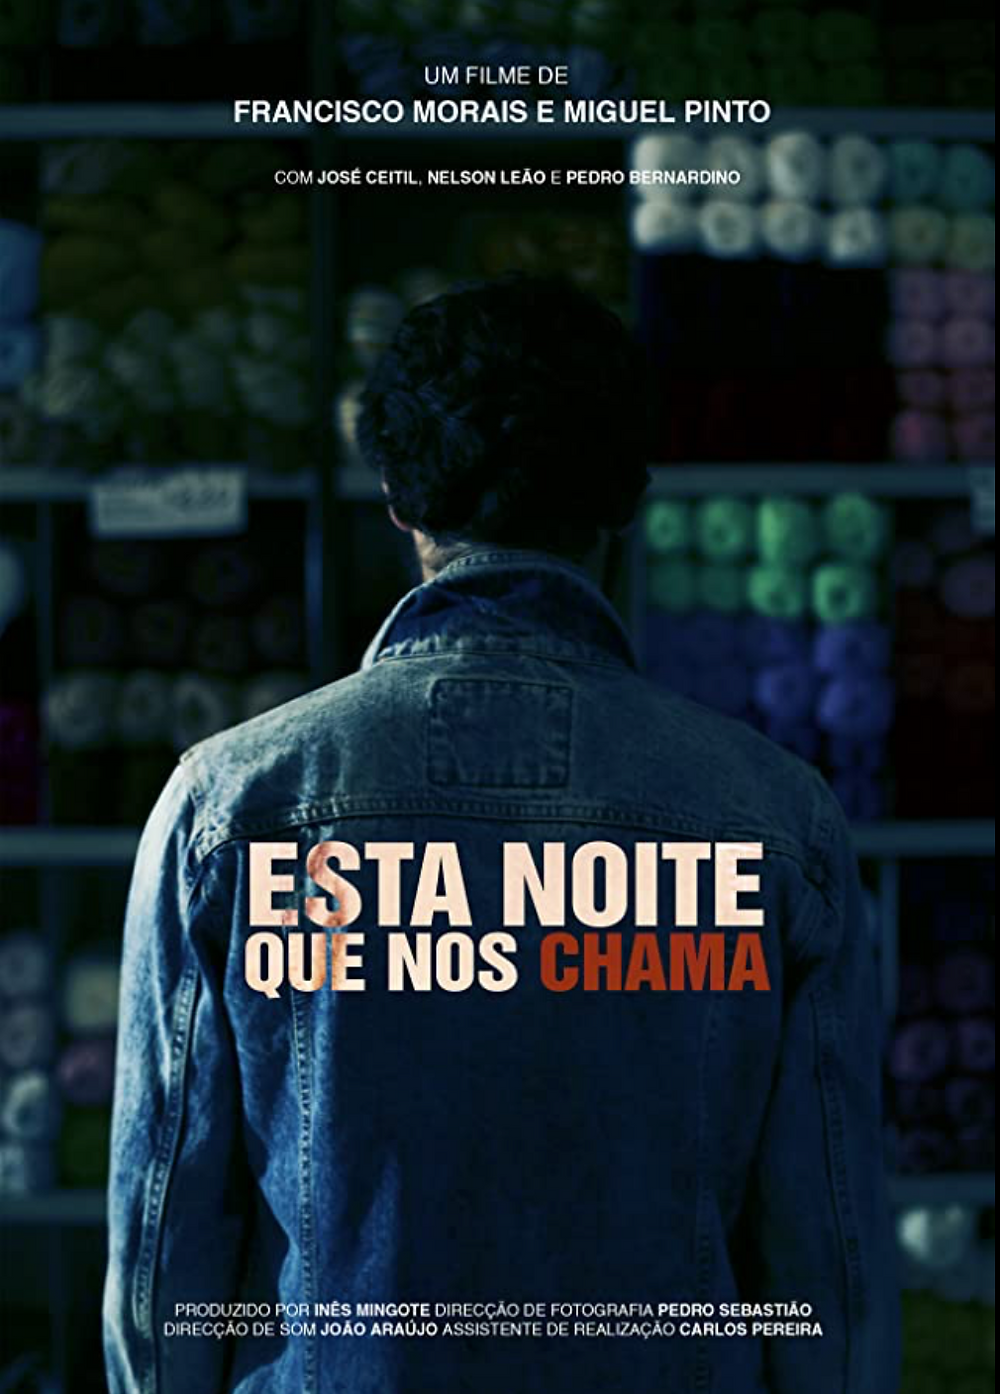 A man in a denim jacket stands with his back to the camera looking at  the shelves inside a wool shop.